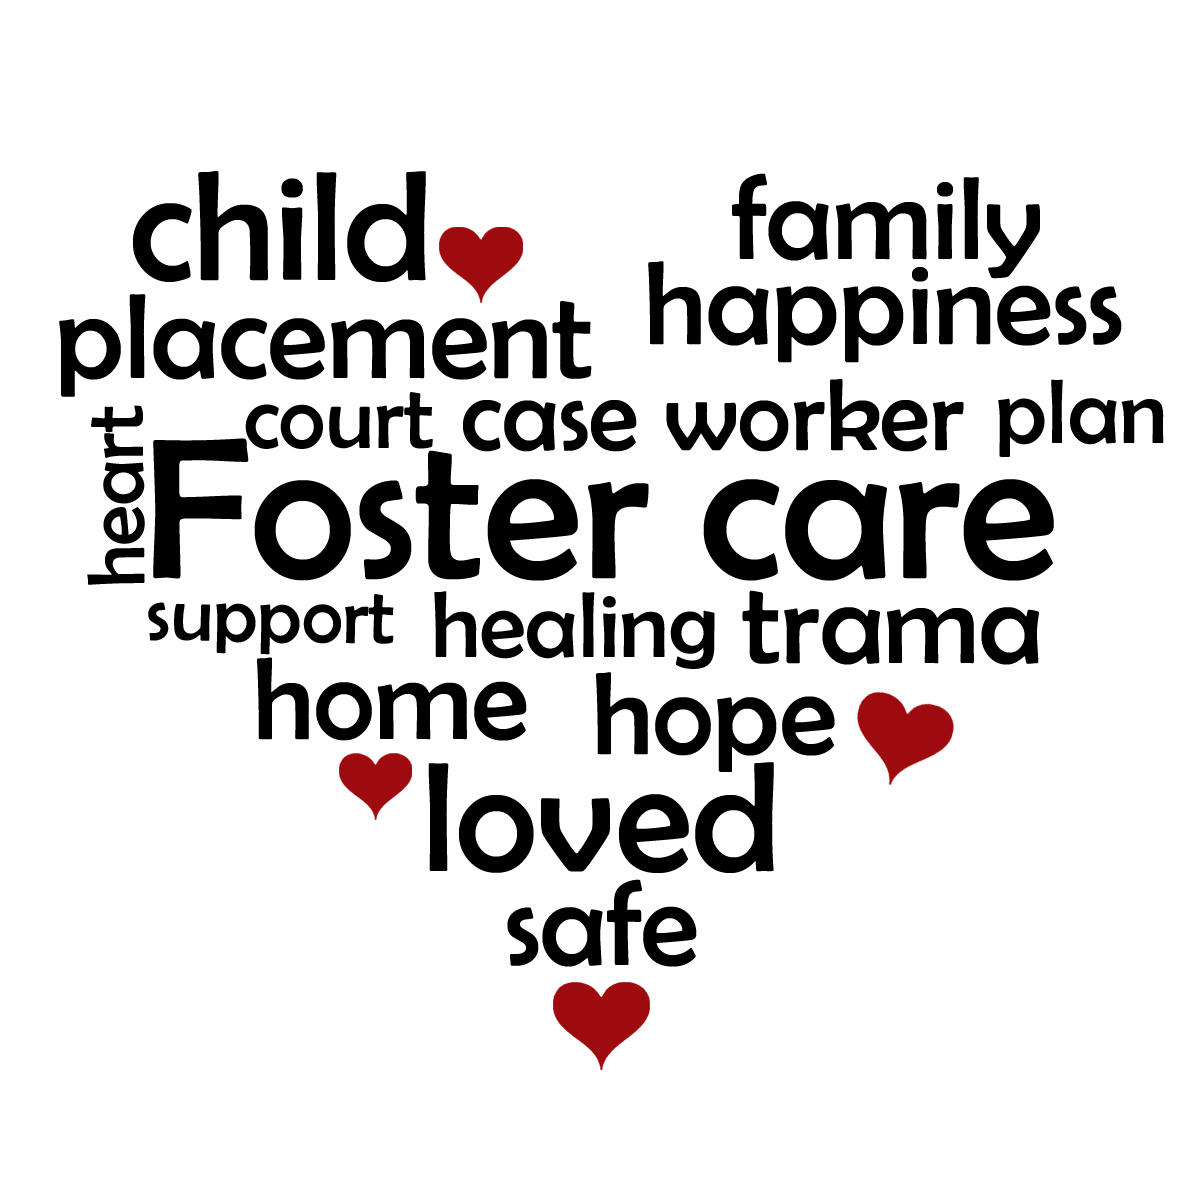 Got questions about foster care and adoptions? We have answers!